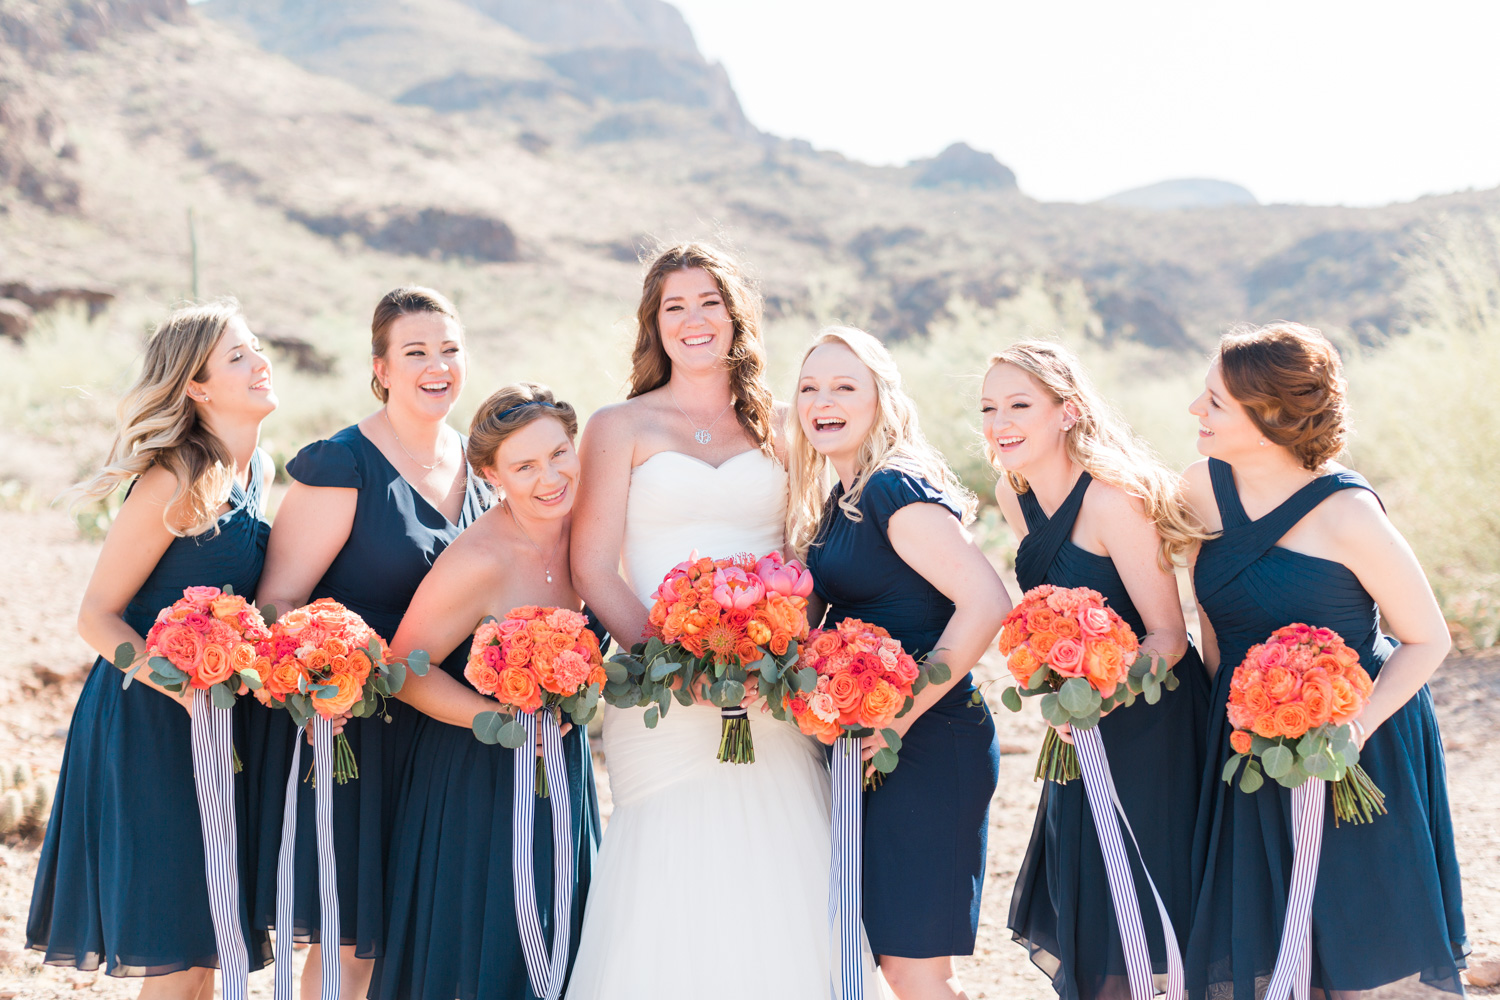 Bride and her bridesmaids in navy dresses with salmon and pink bouquets. Tucson mountains in background